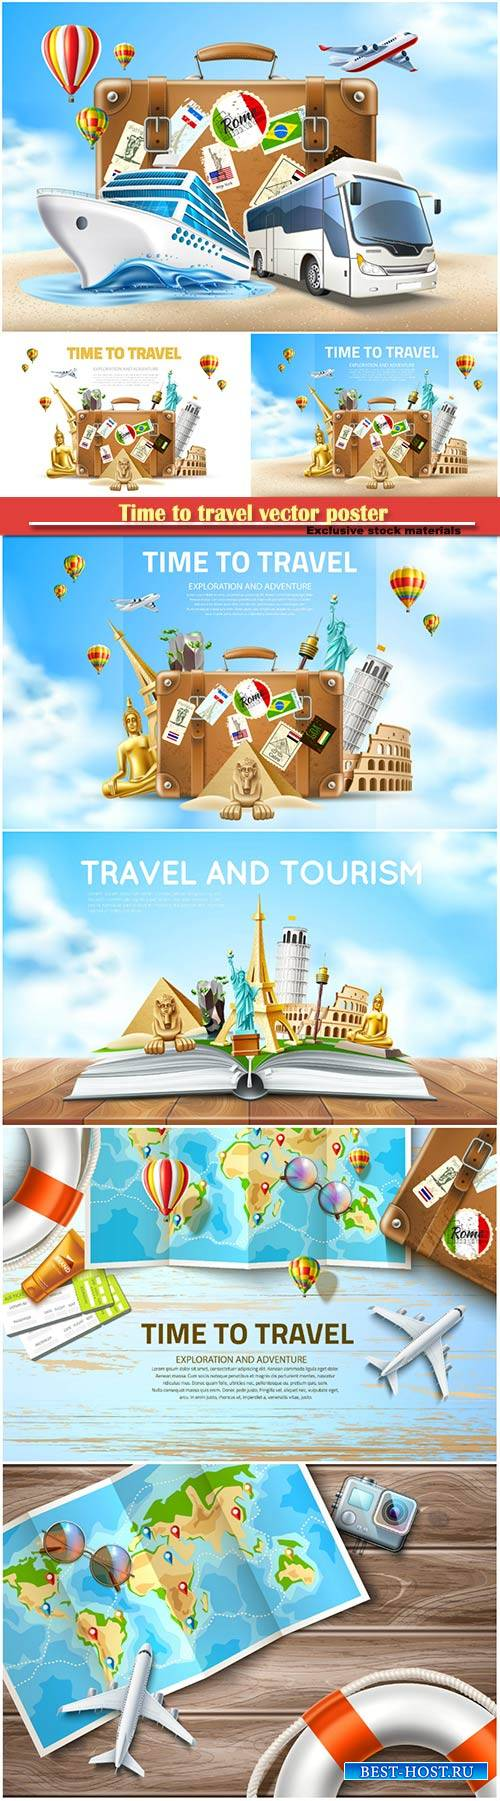 Time to travel vector poster, travelling and tourism banner